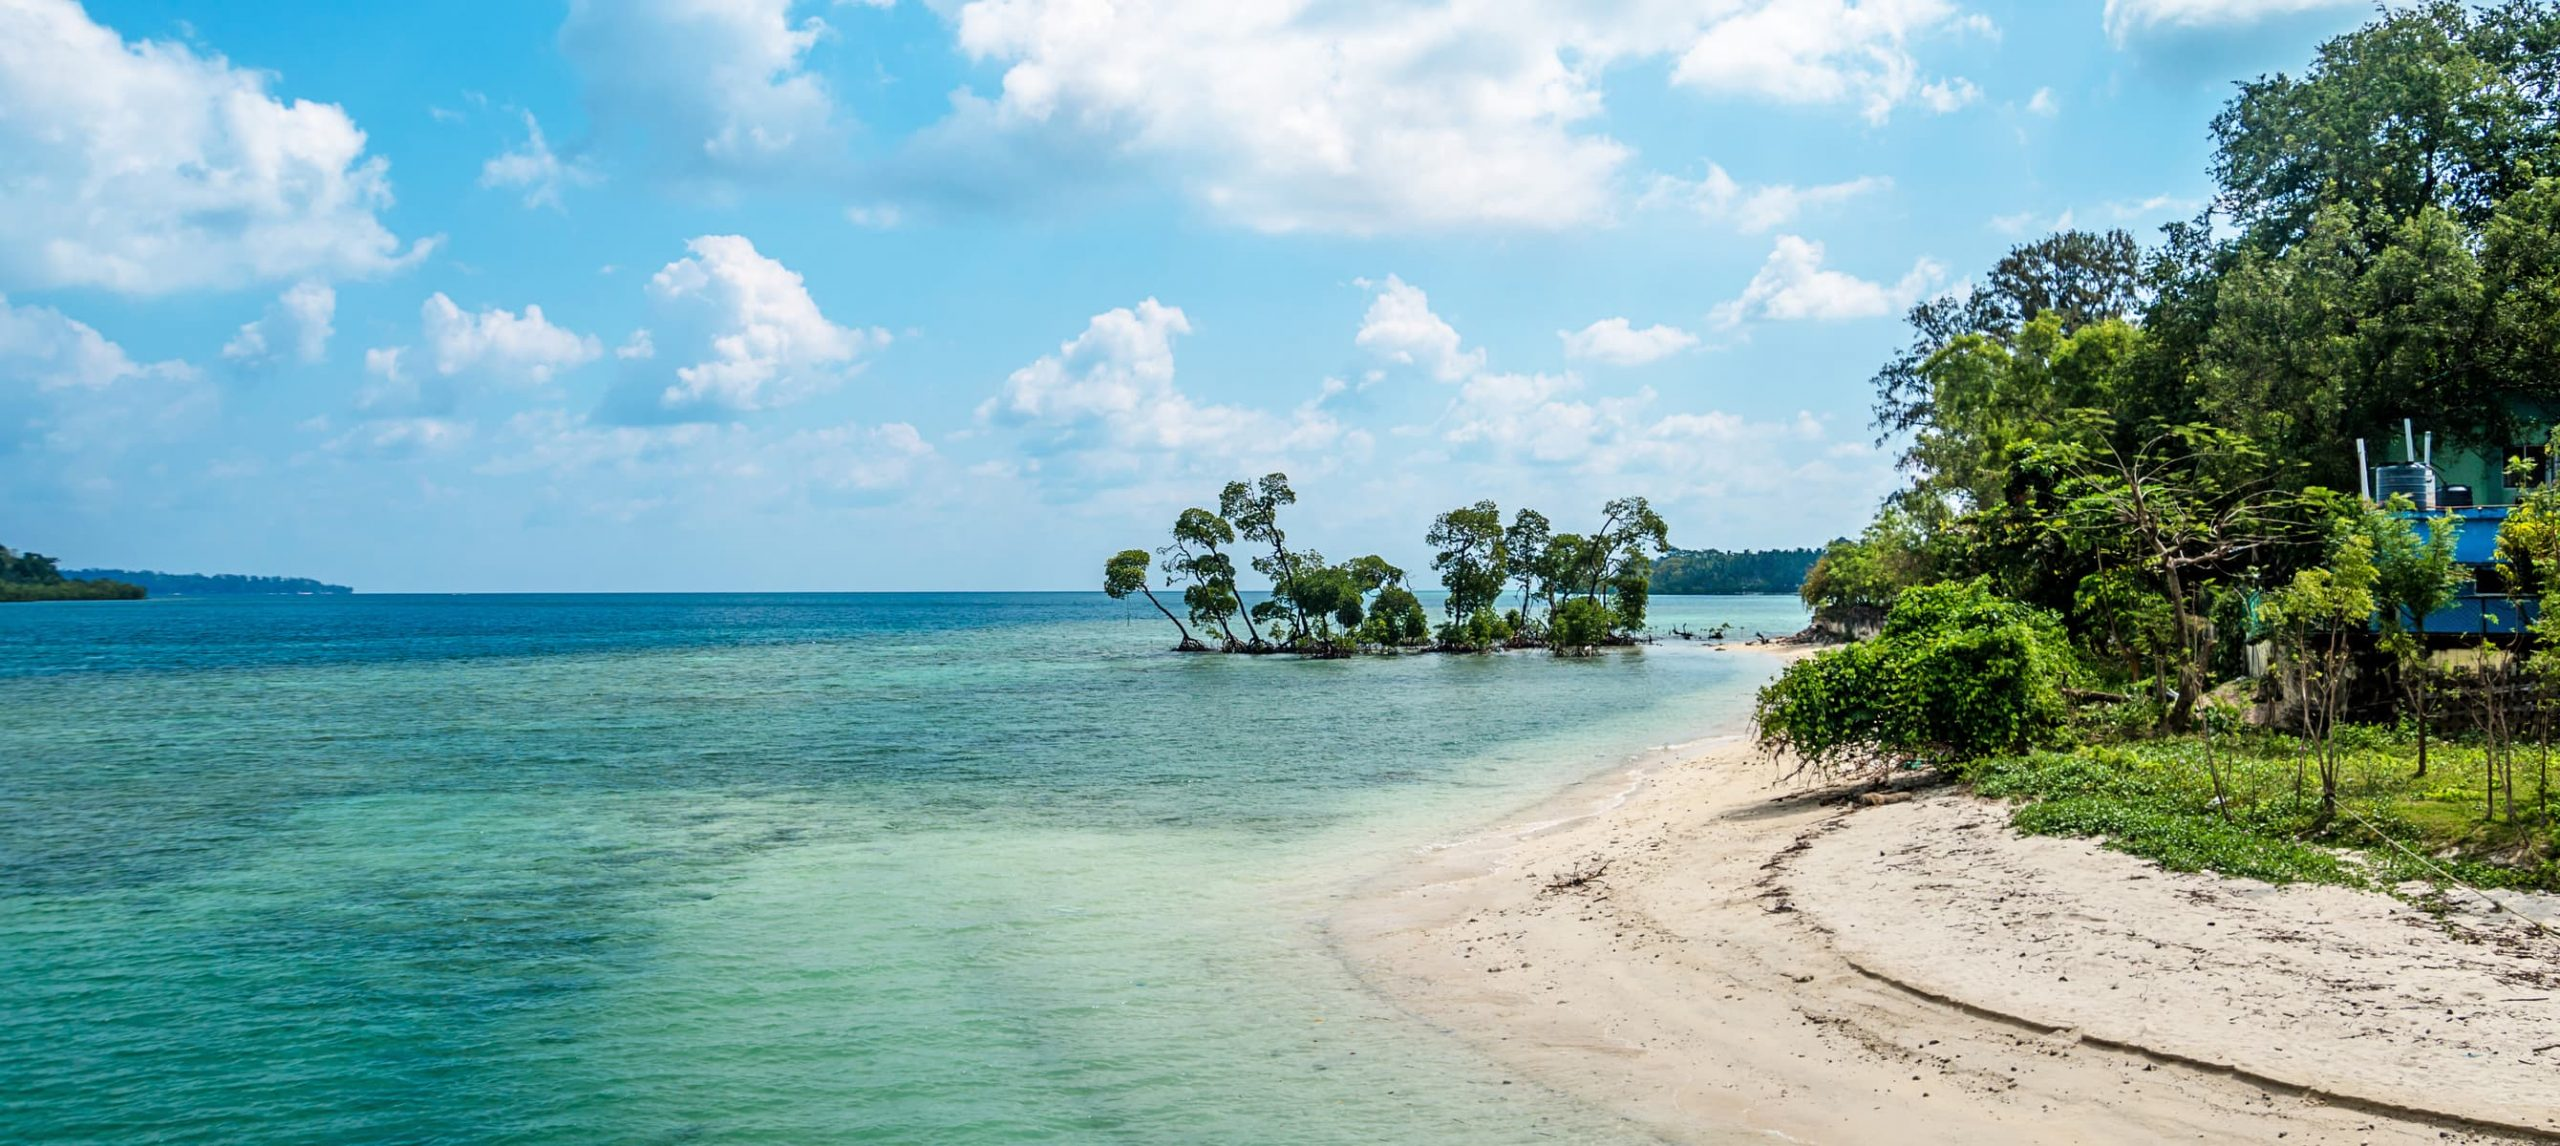 The 11 Best Beaches In India For An Amazing Vacation